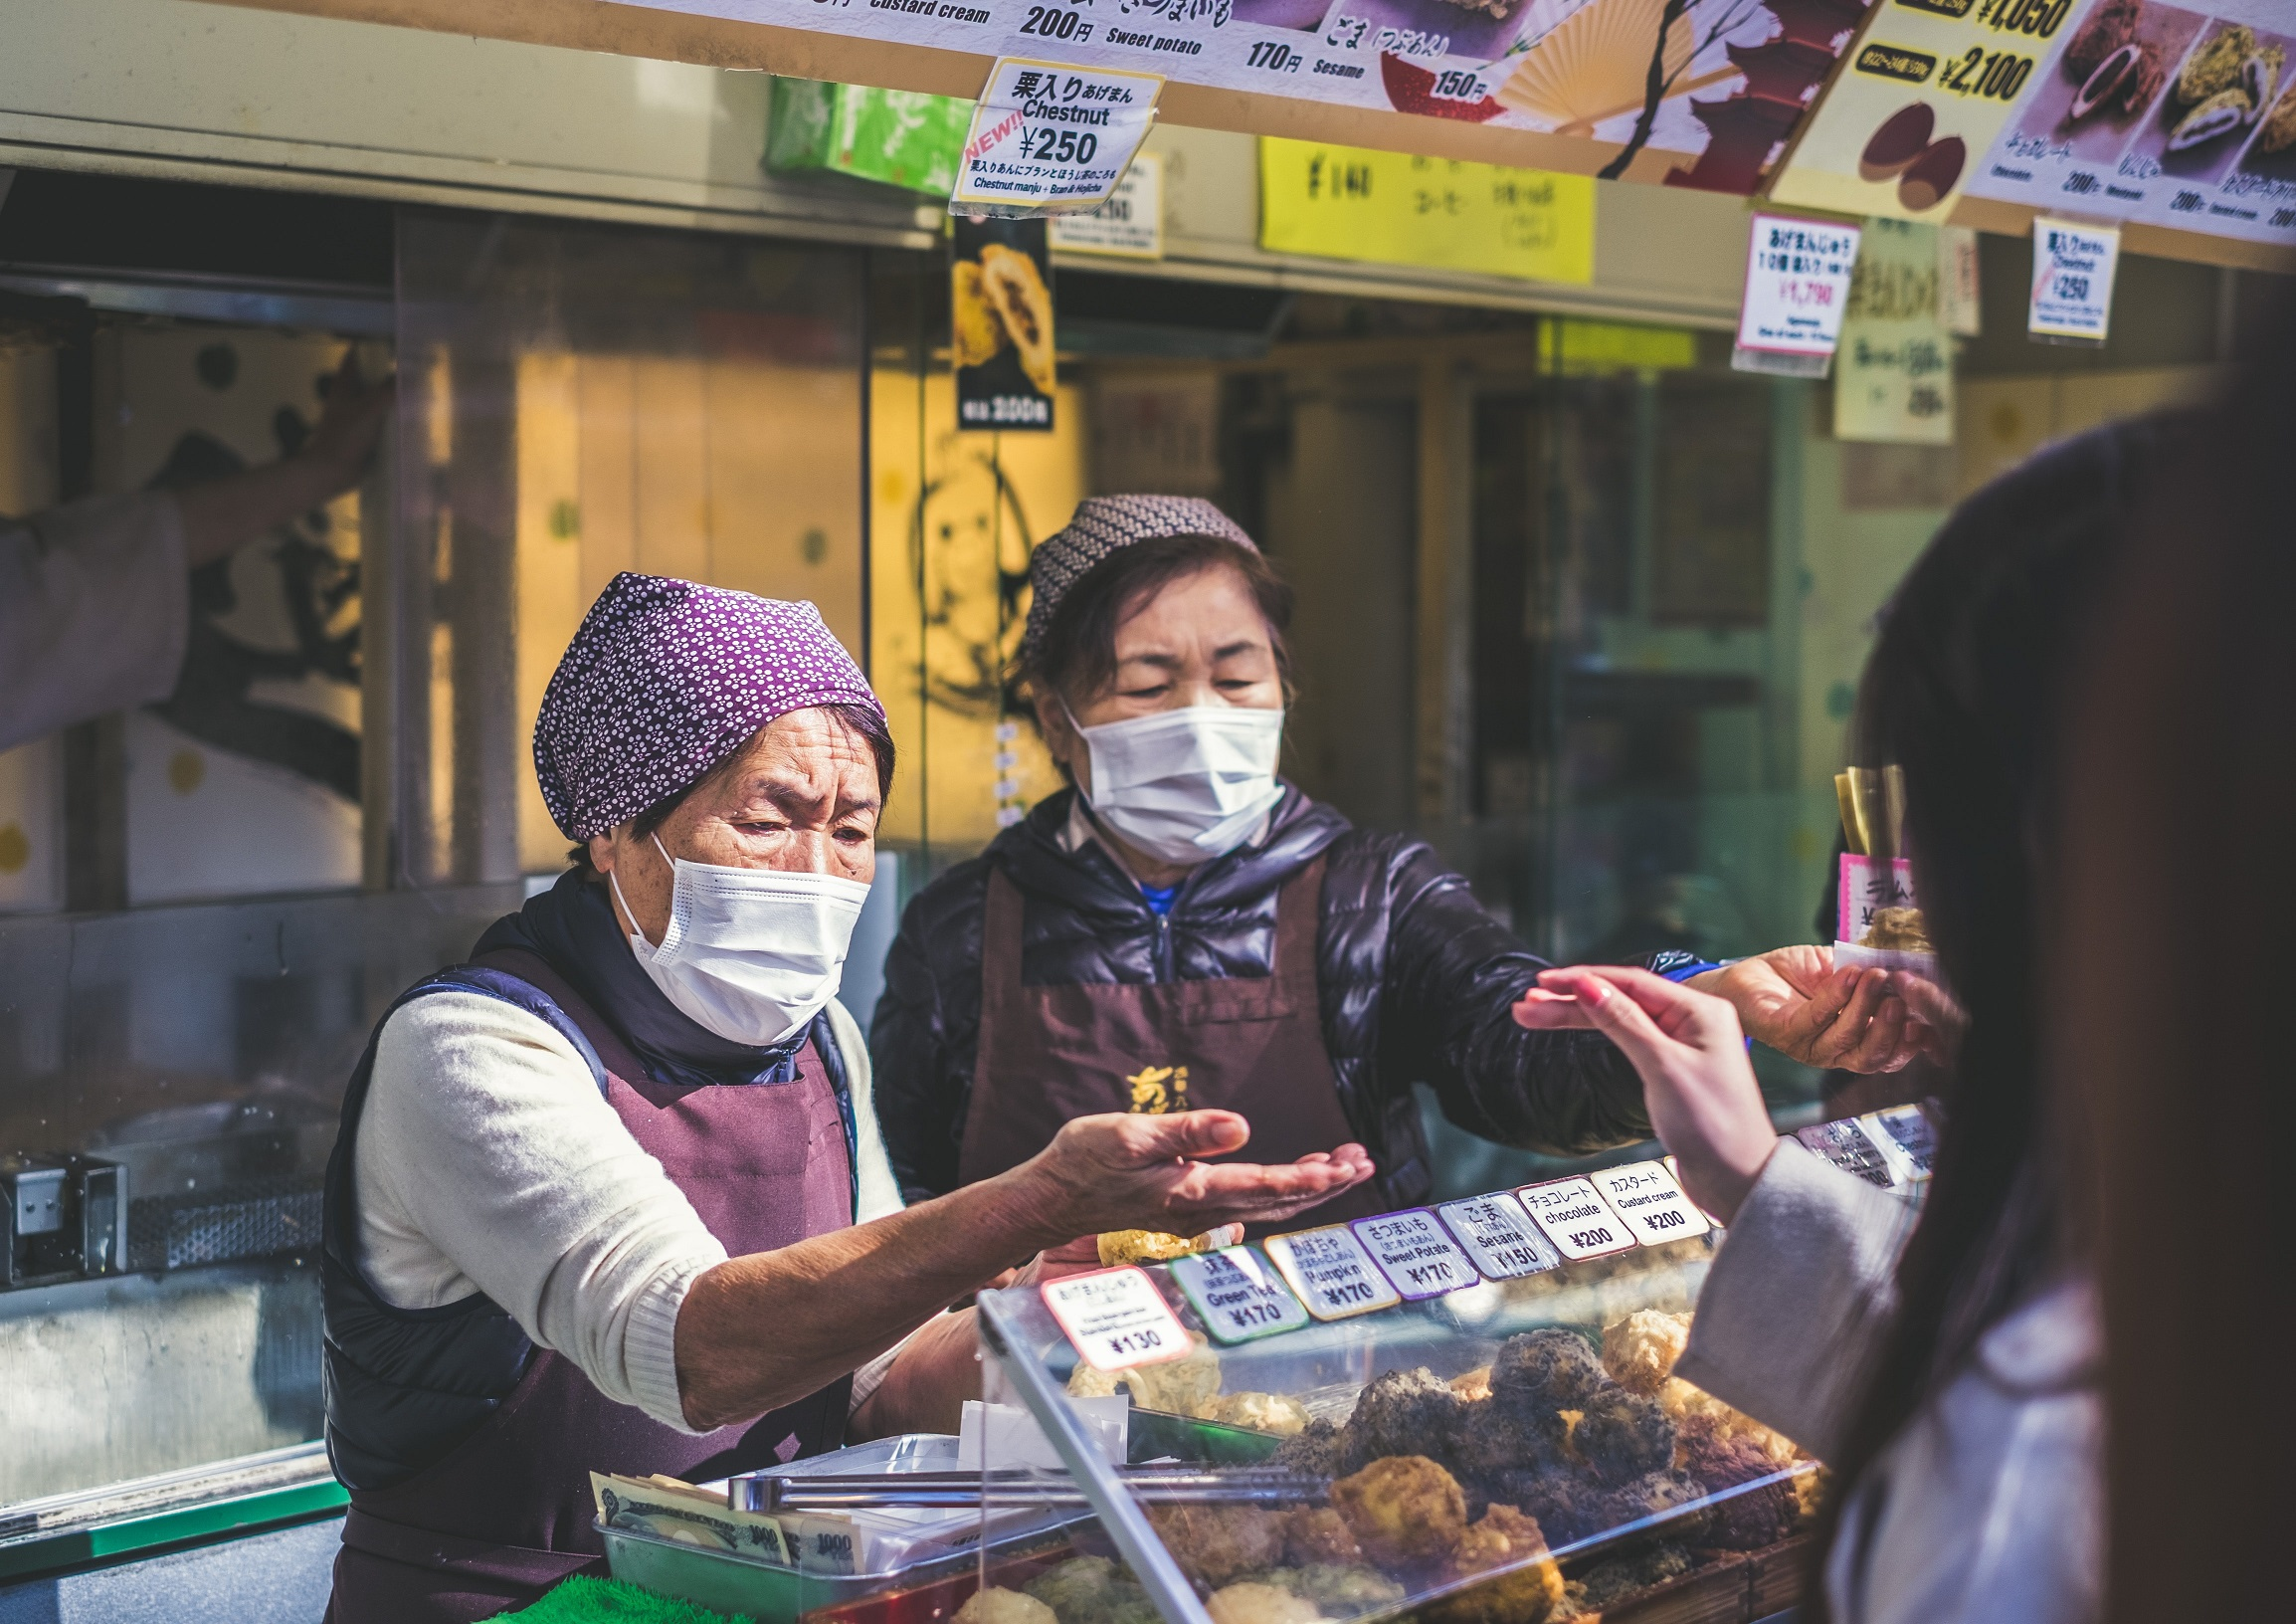 Japan's Daily Life: Effects of COVID-19